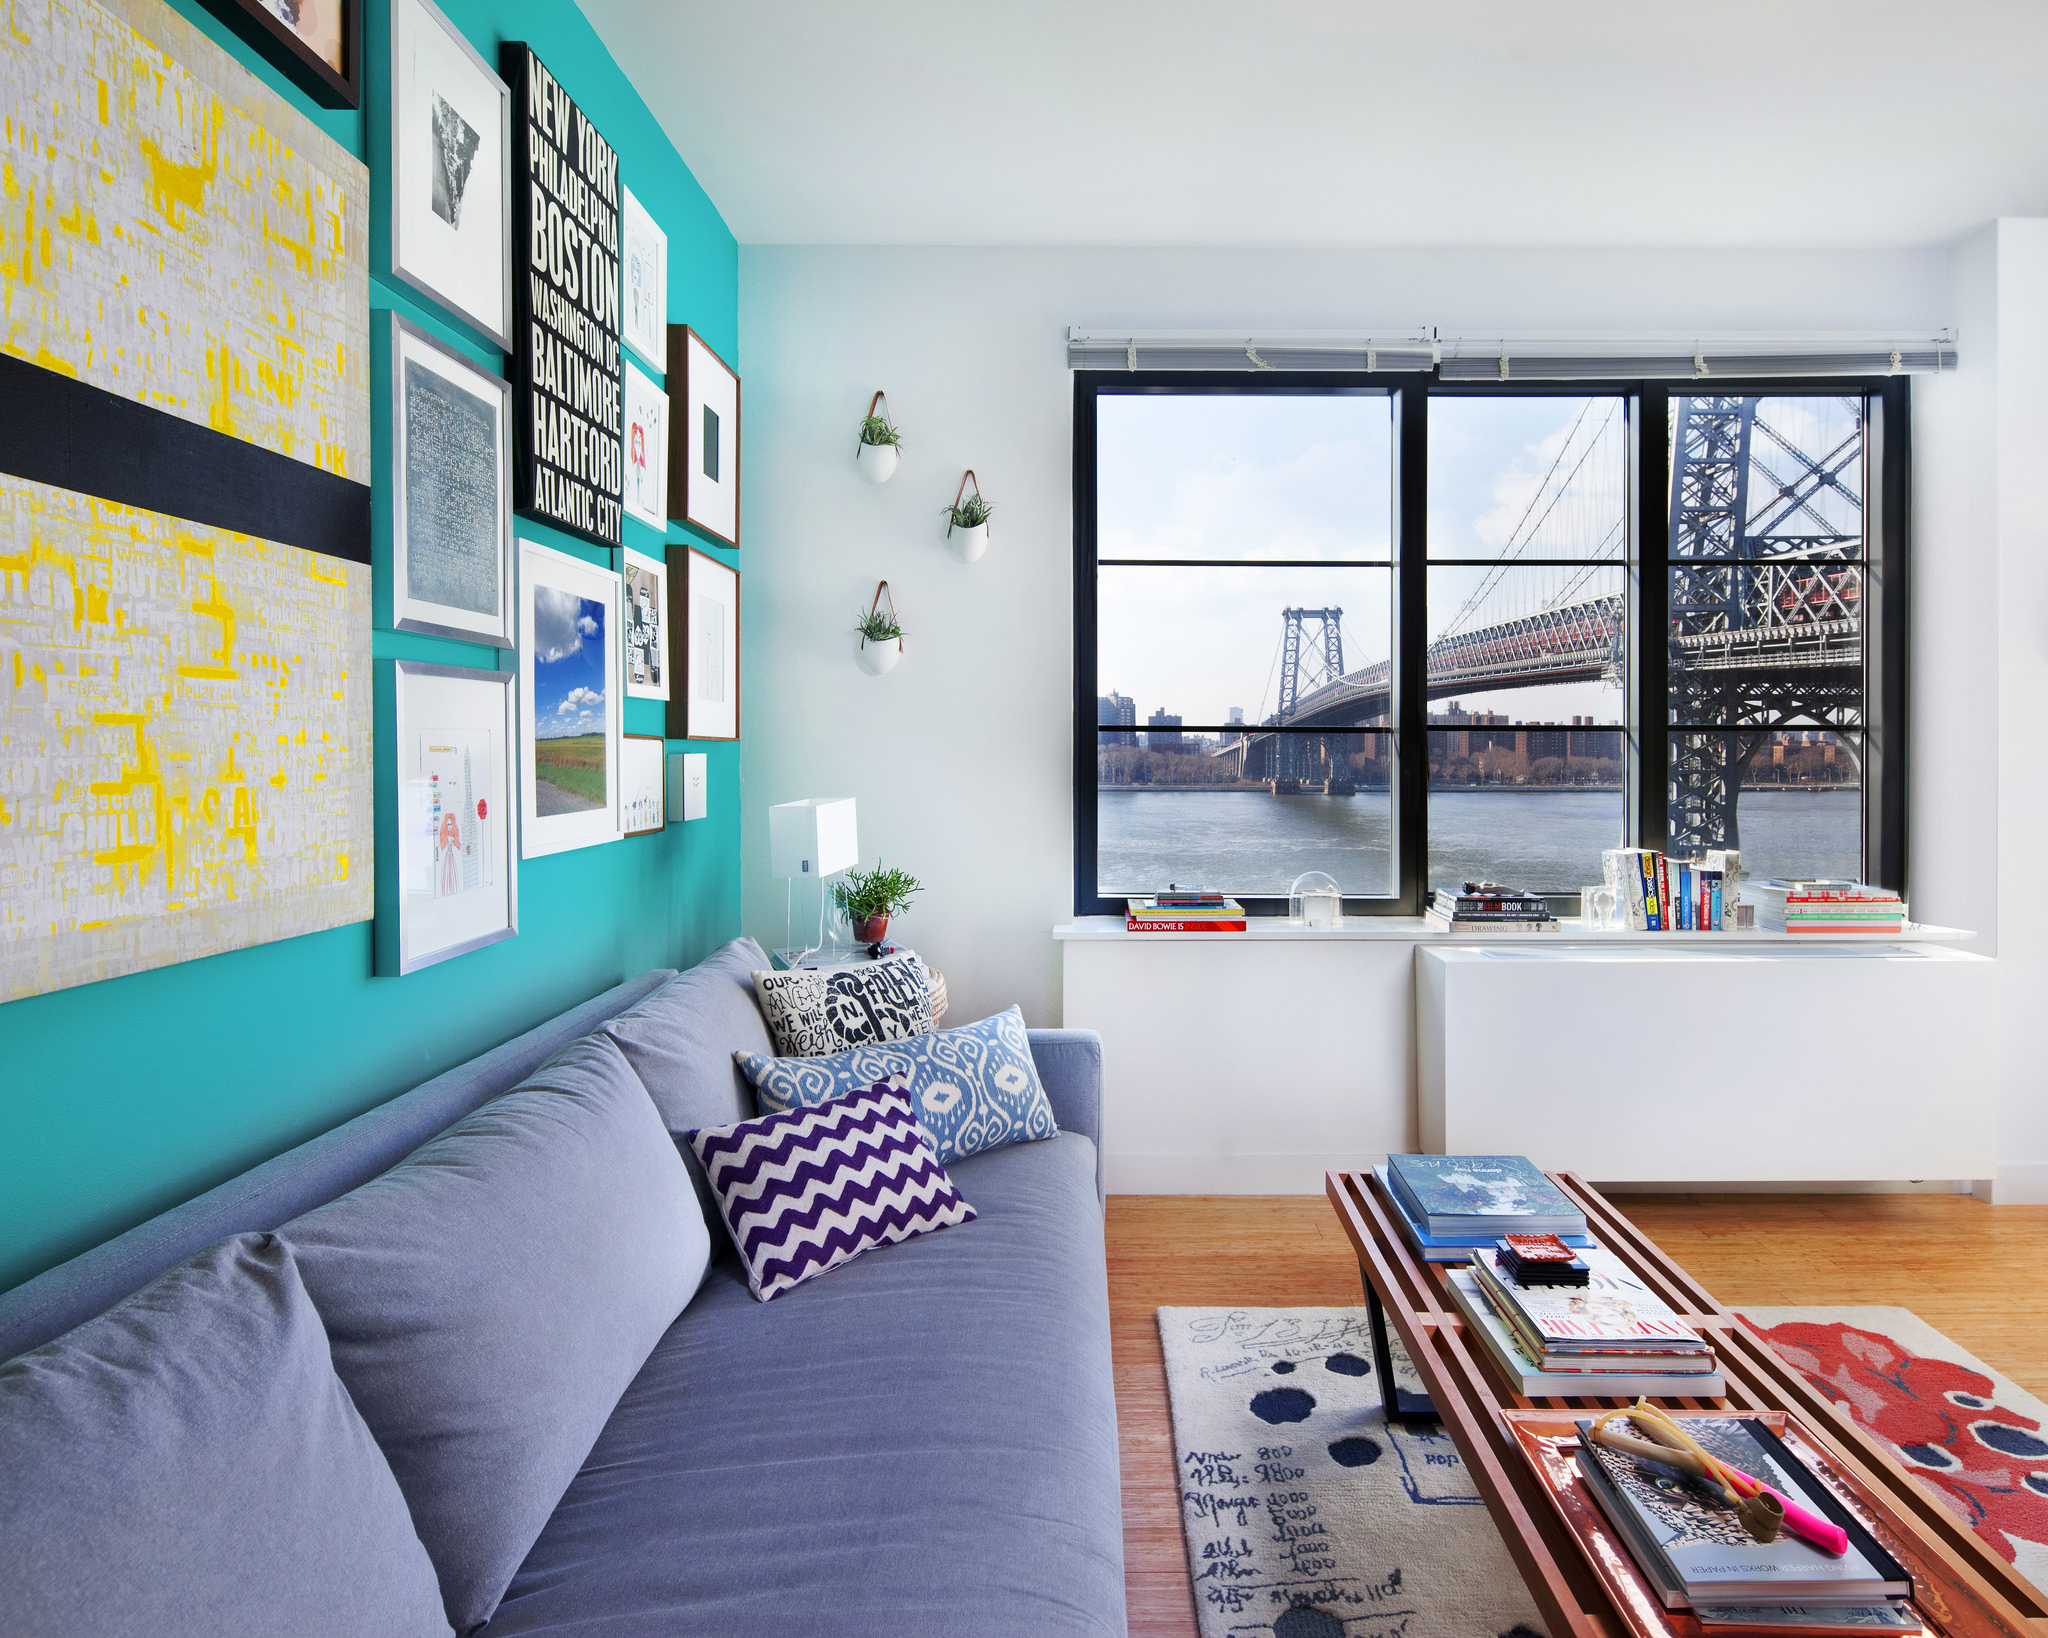 Best Websites for Personalized Wall Art